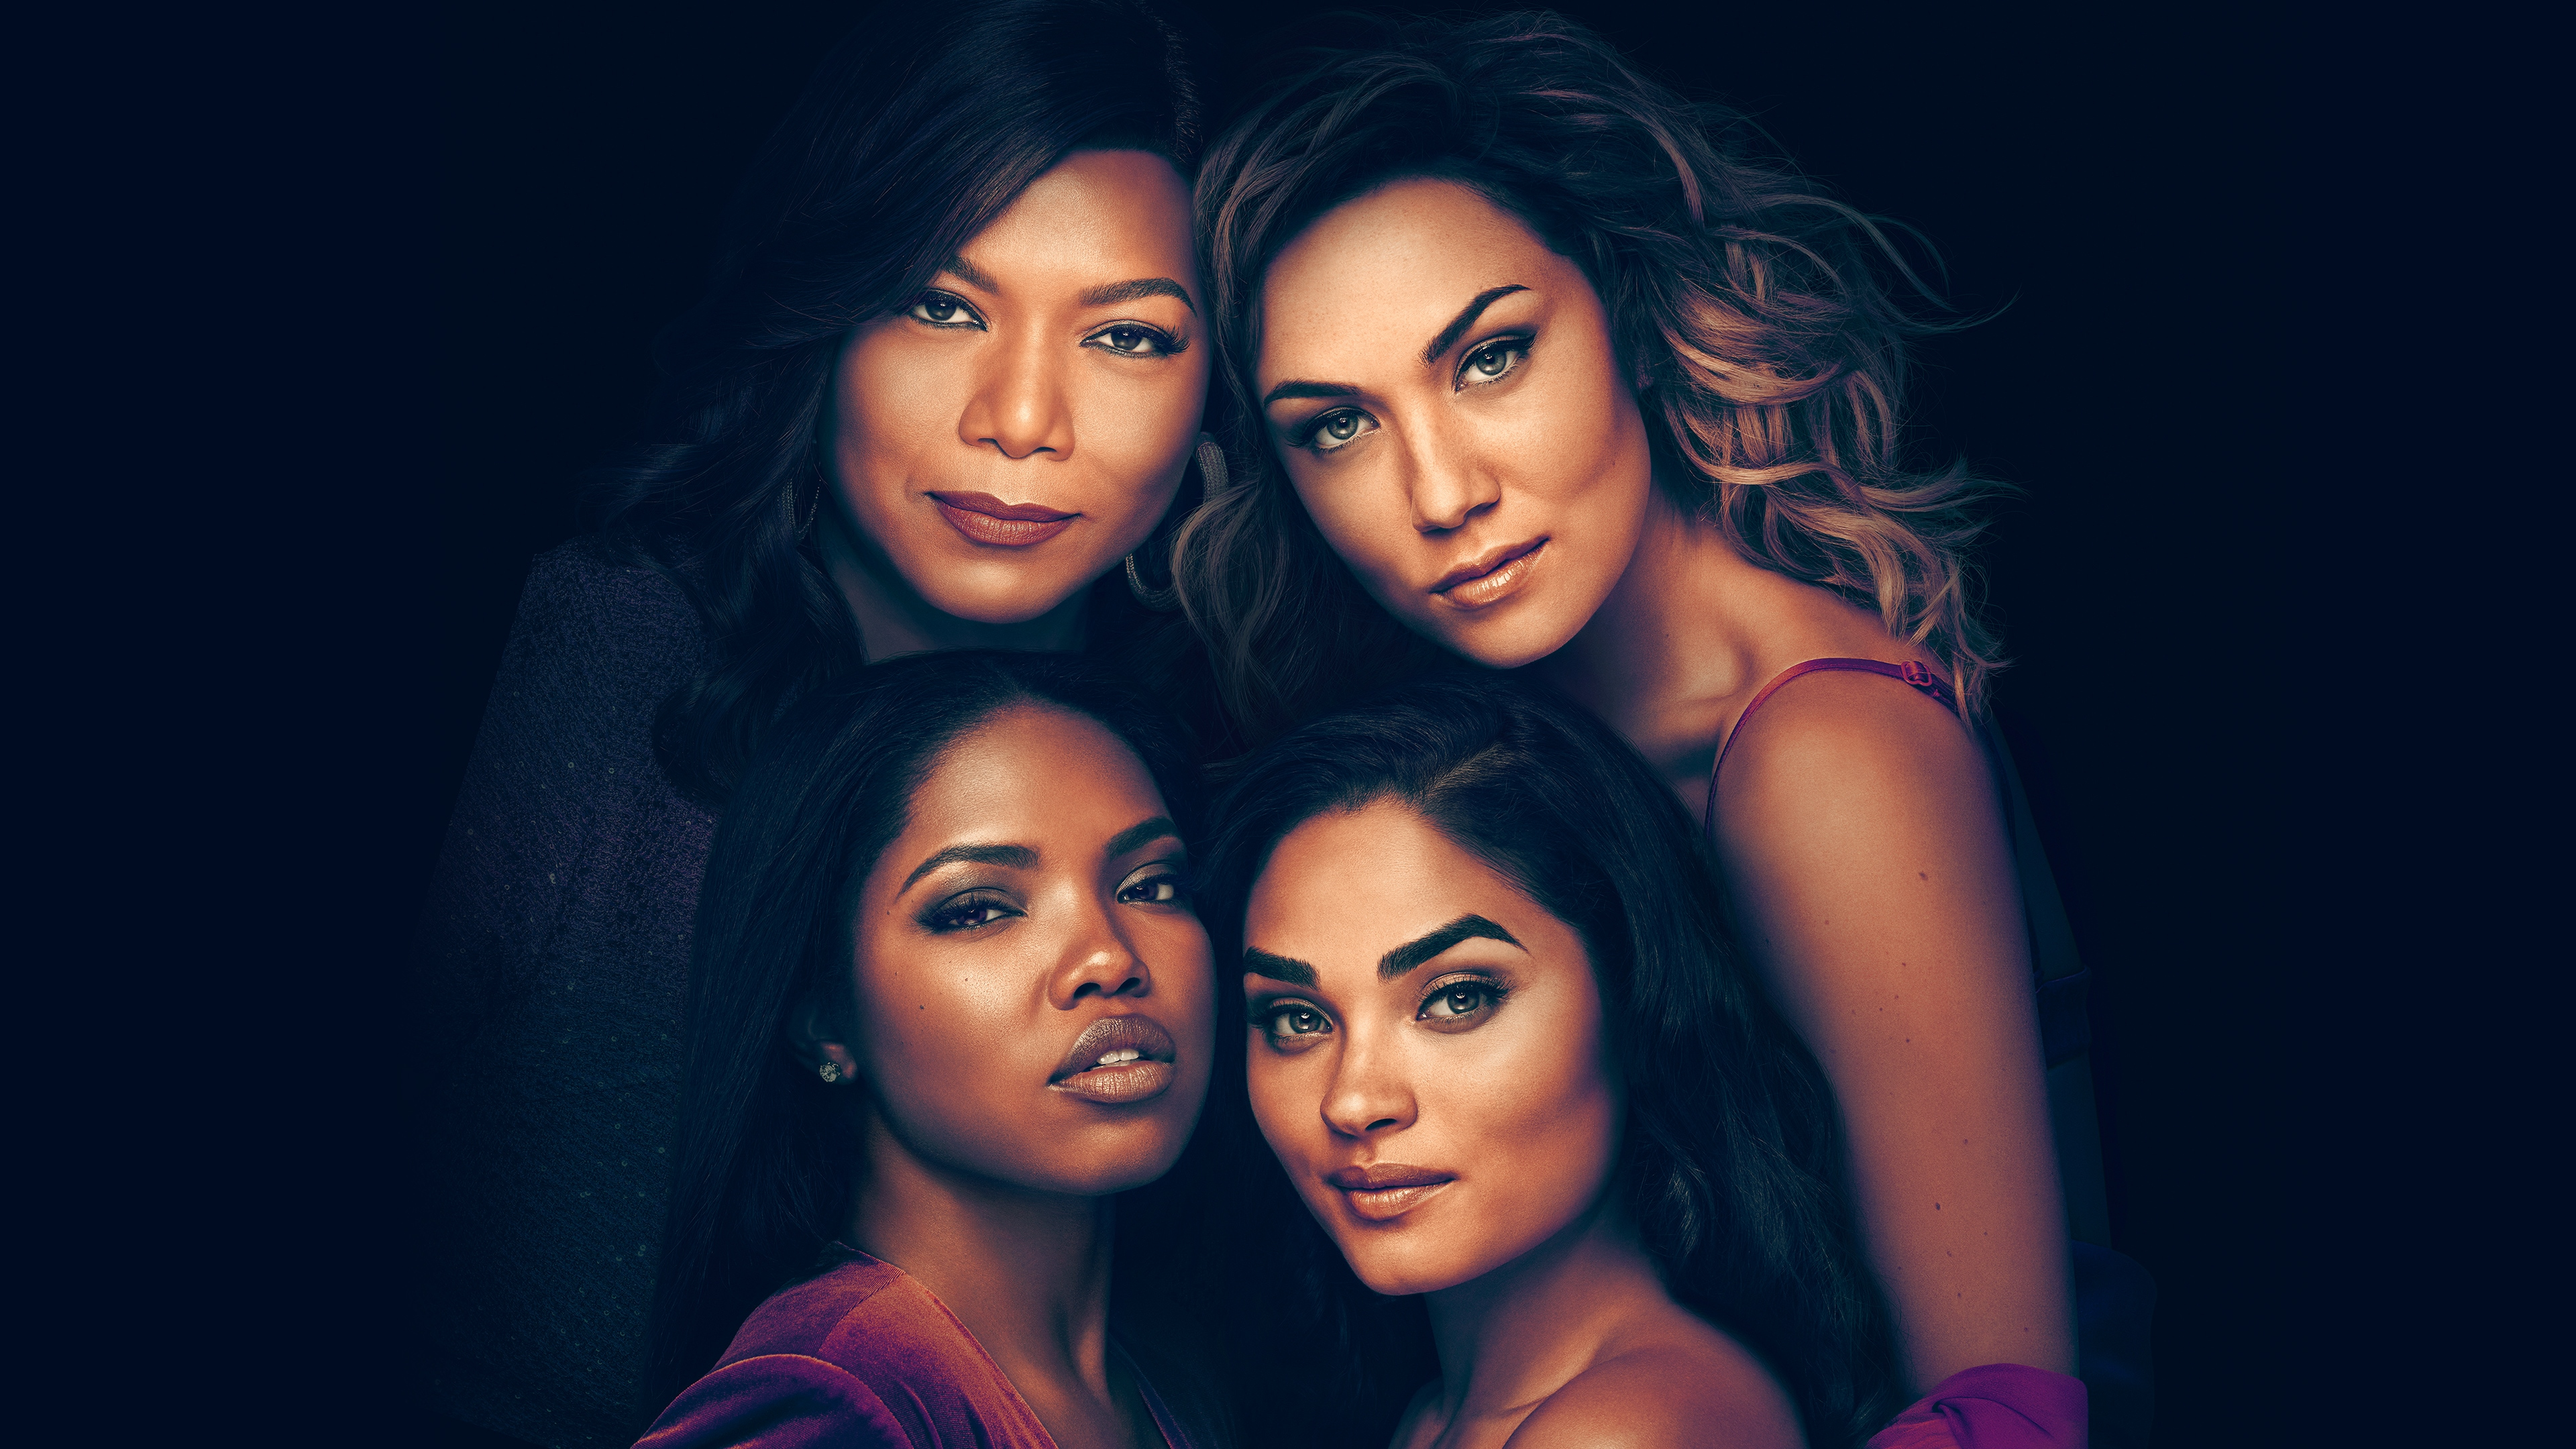 About Queen Latifah Star Cast On Fox